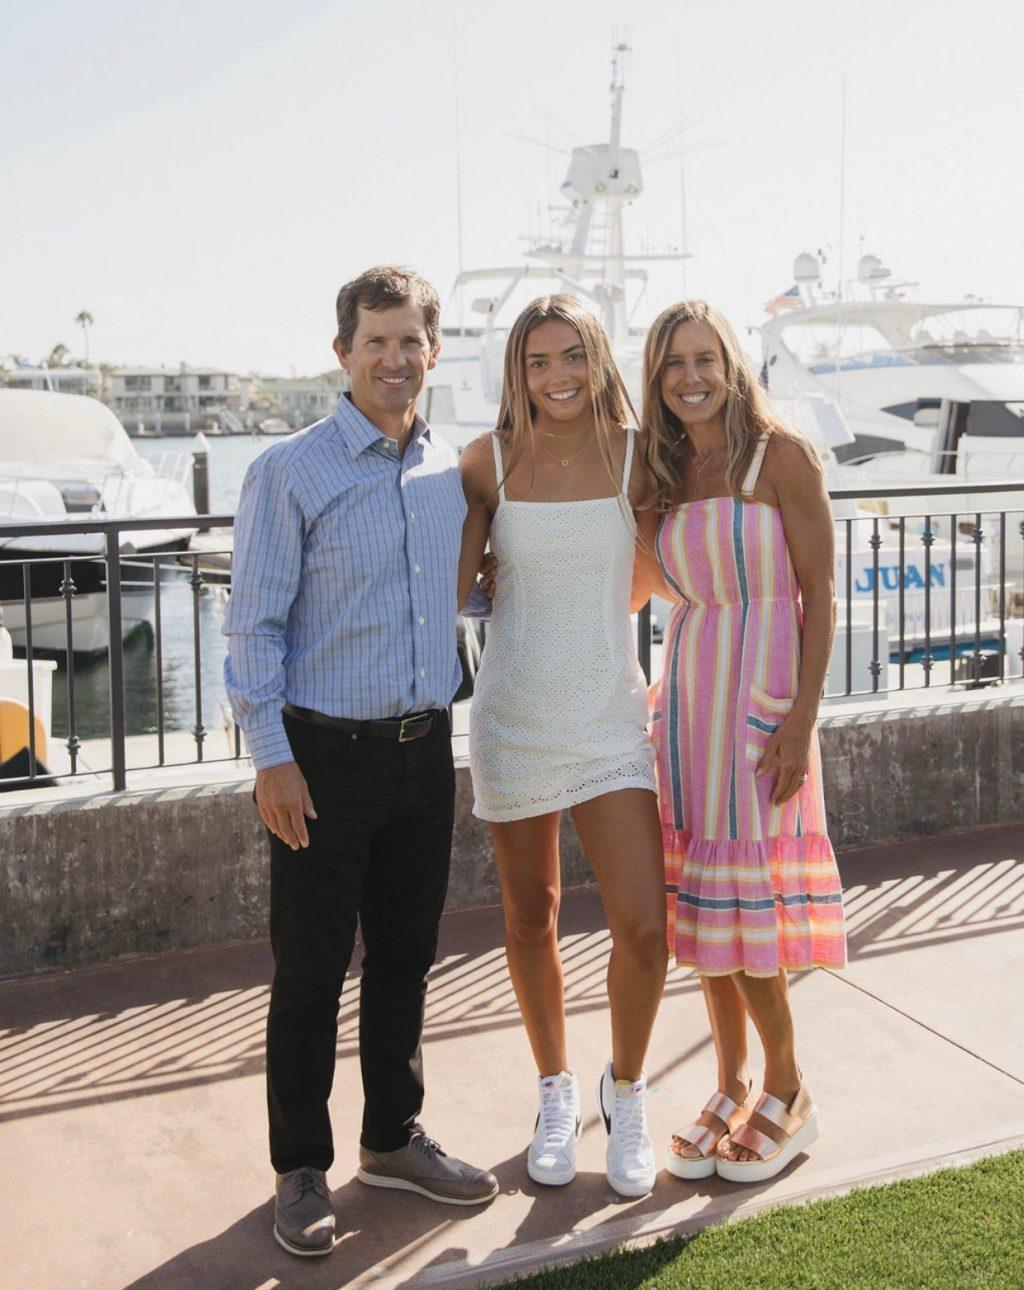 Ianni poses with her parents at the Balboa Bay Club in Newport Beach, Calif., in July. While Ianni said she is currently living at home with her parents in Newport Beach, she is excited to move to the Malibu campus next fall.